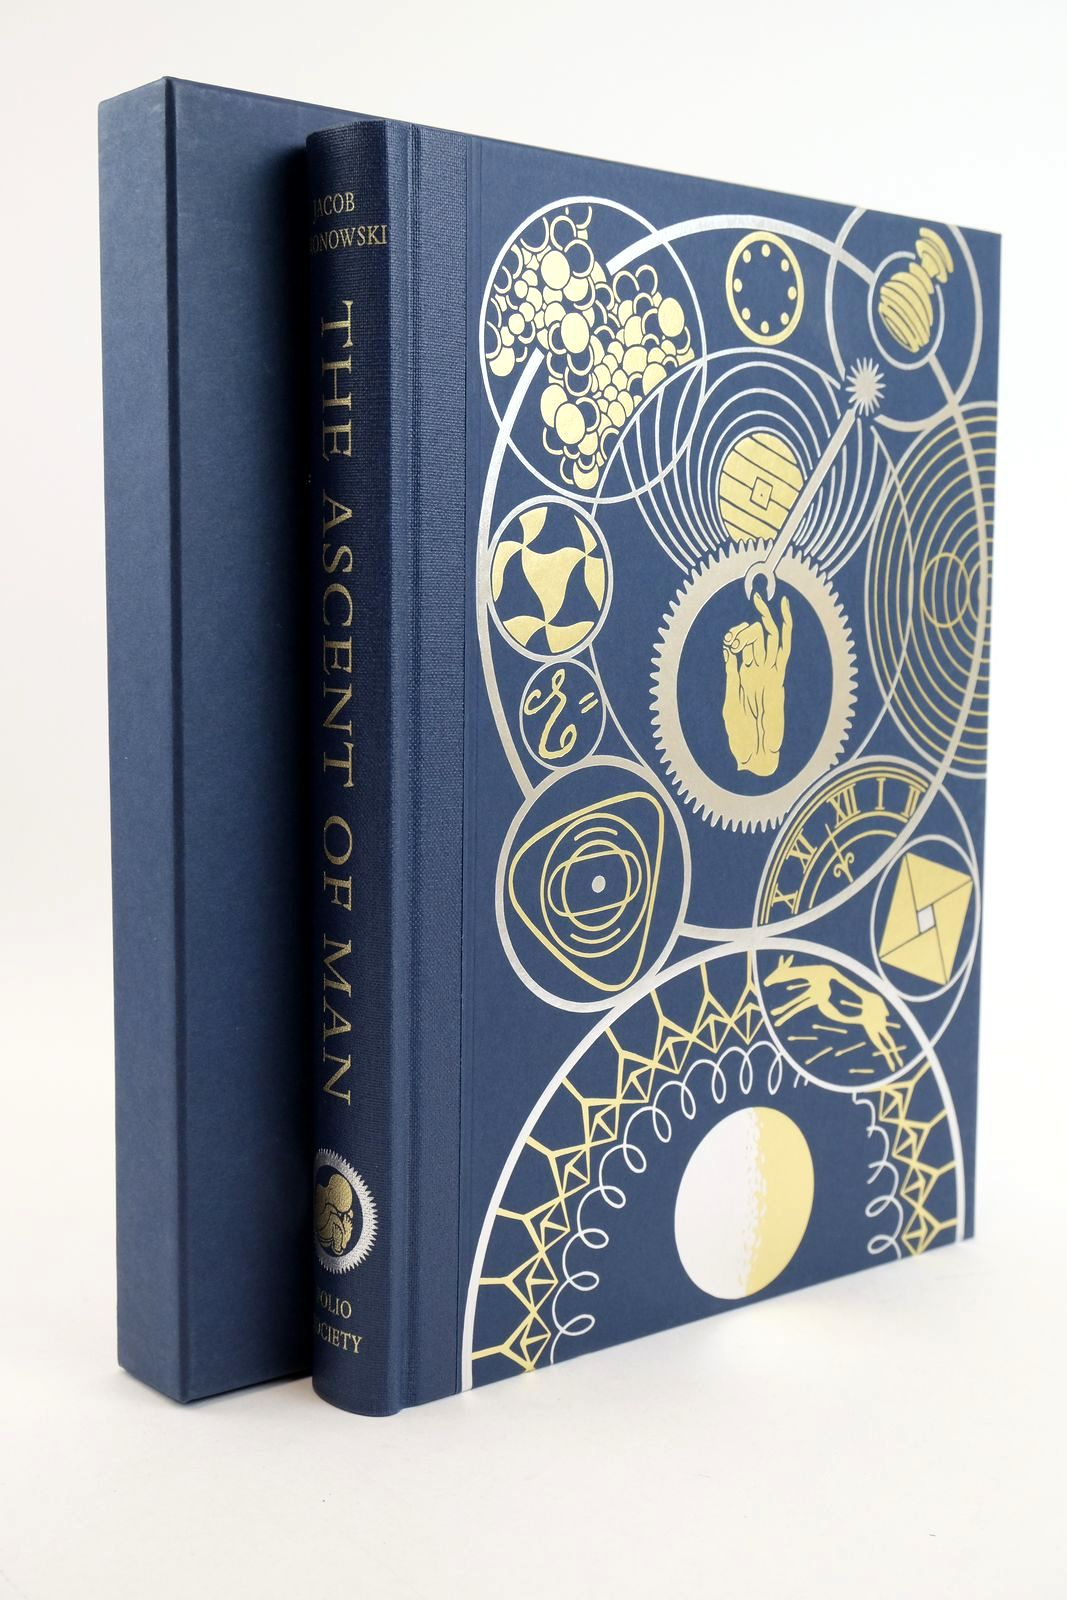 Photo of THE ASCENT OF MAN written by Bronowski, J. Bragg, Melvyn published by Folio Society (STOCK CODE: 1318879)  for sale by Stella & Rose's Books